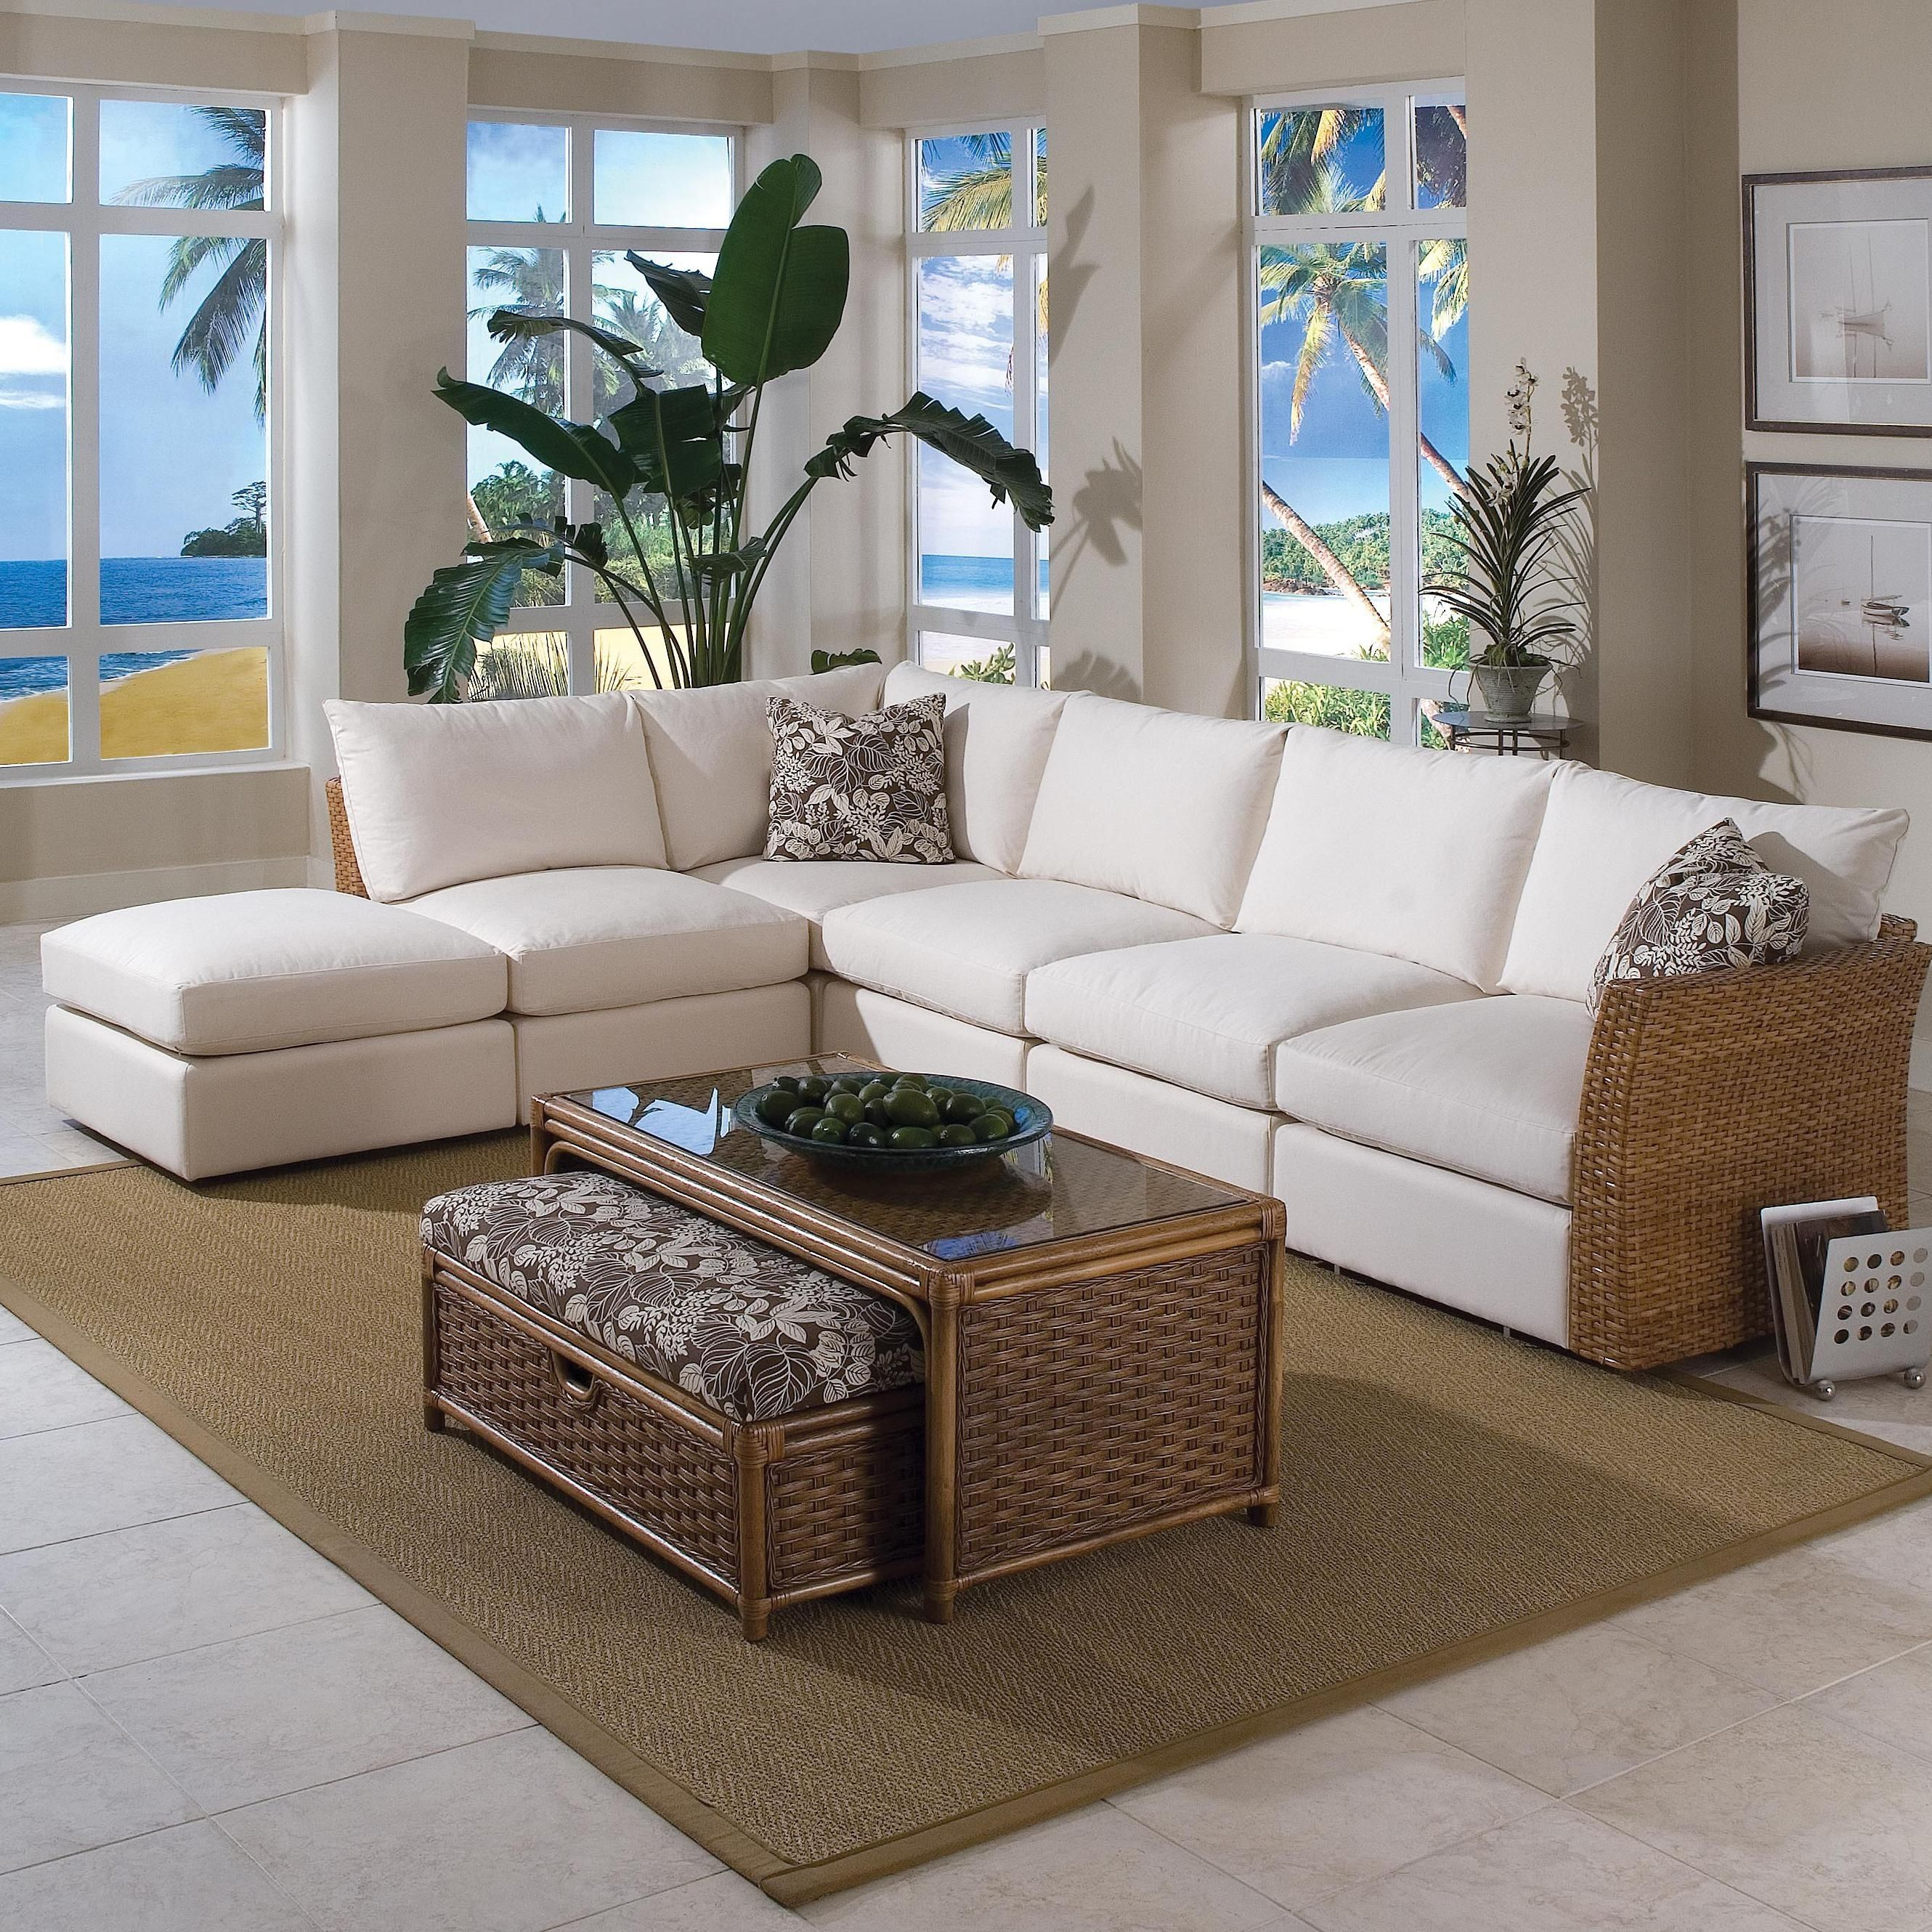 Sectional Sofas In Greenville Sc Inexpensive Living Room Grand Furniture Living Room Furniture